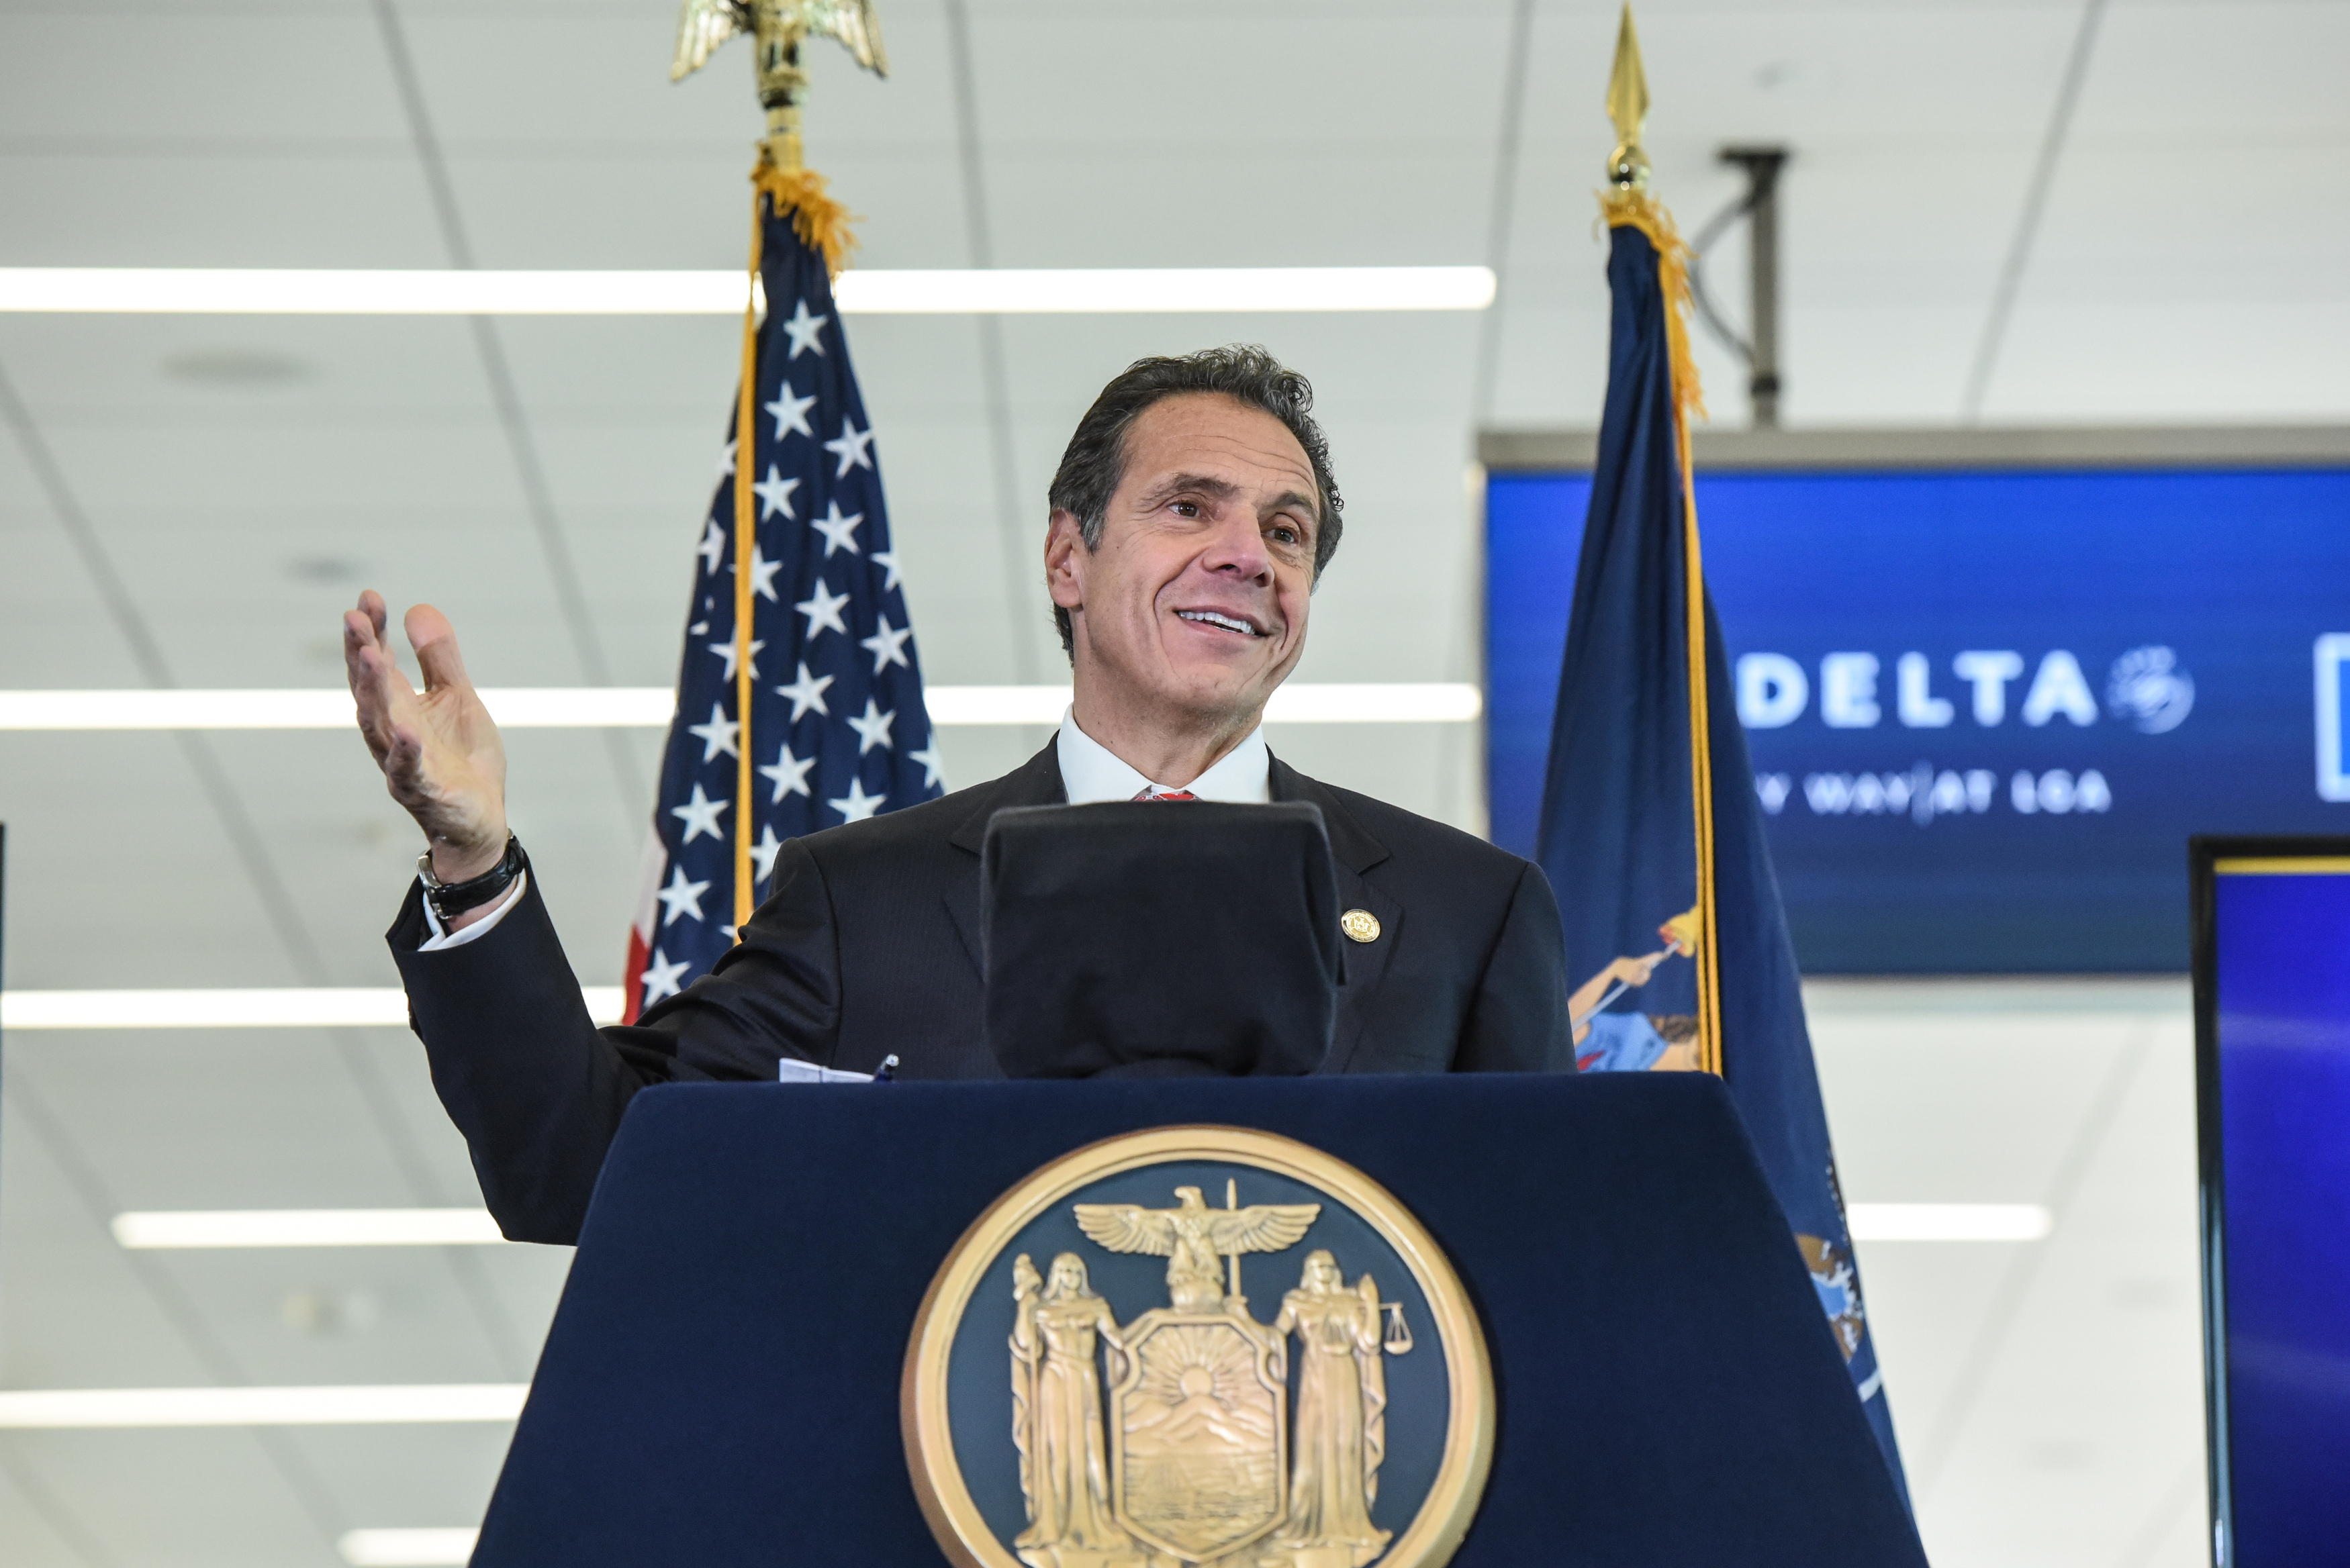 Governor Andrew Cuomo stands behind a podium as he delivers a speech in Queens